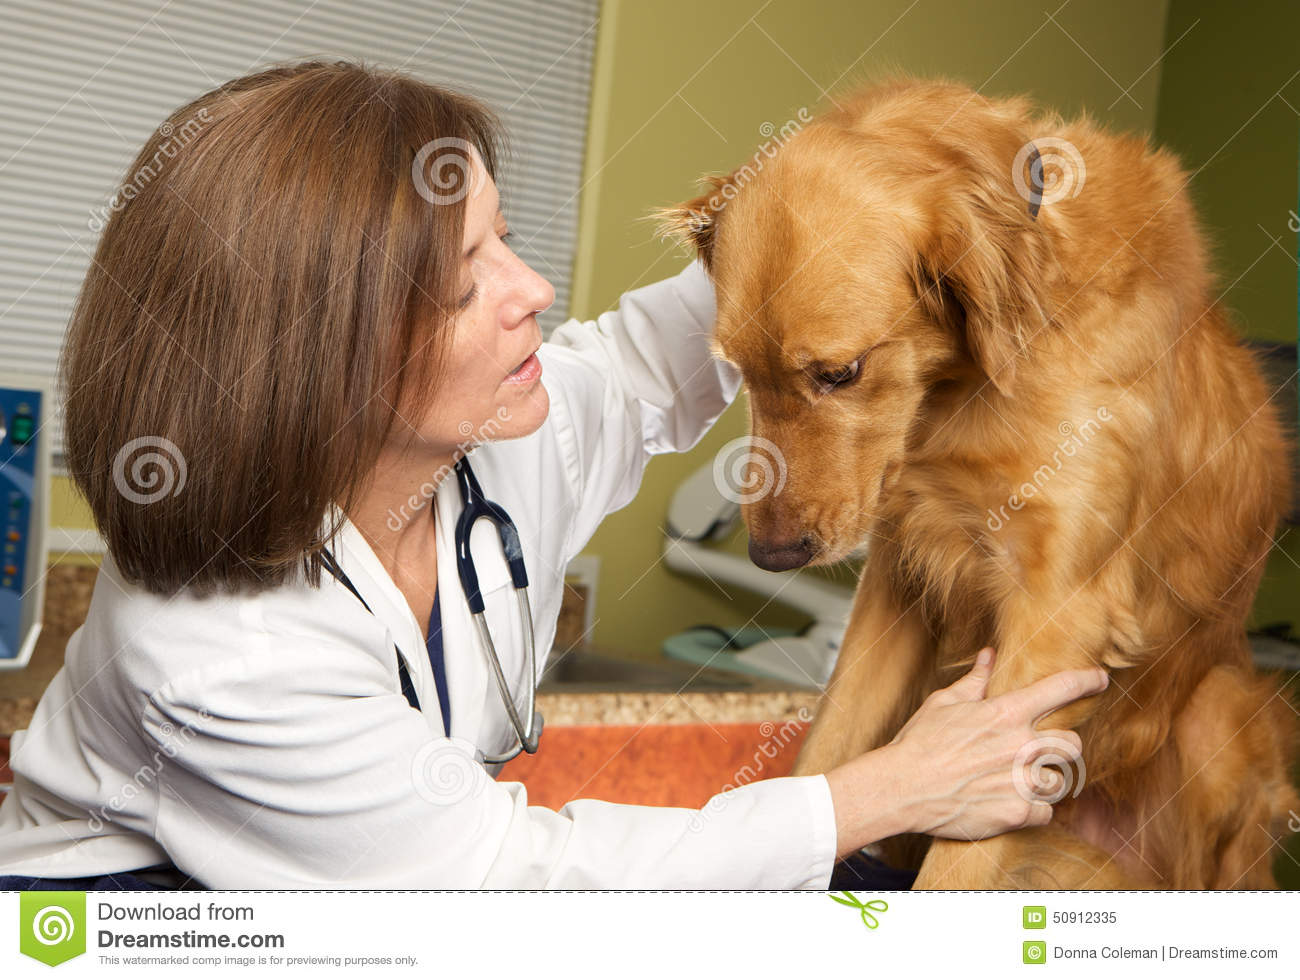 A Veterinarian Examining a Nervous and Scared Dog